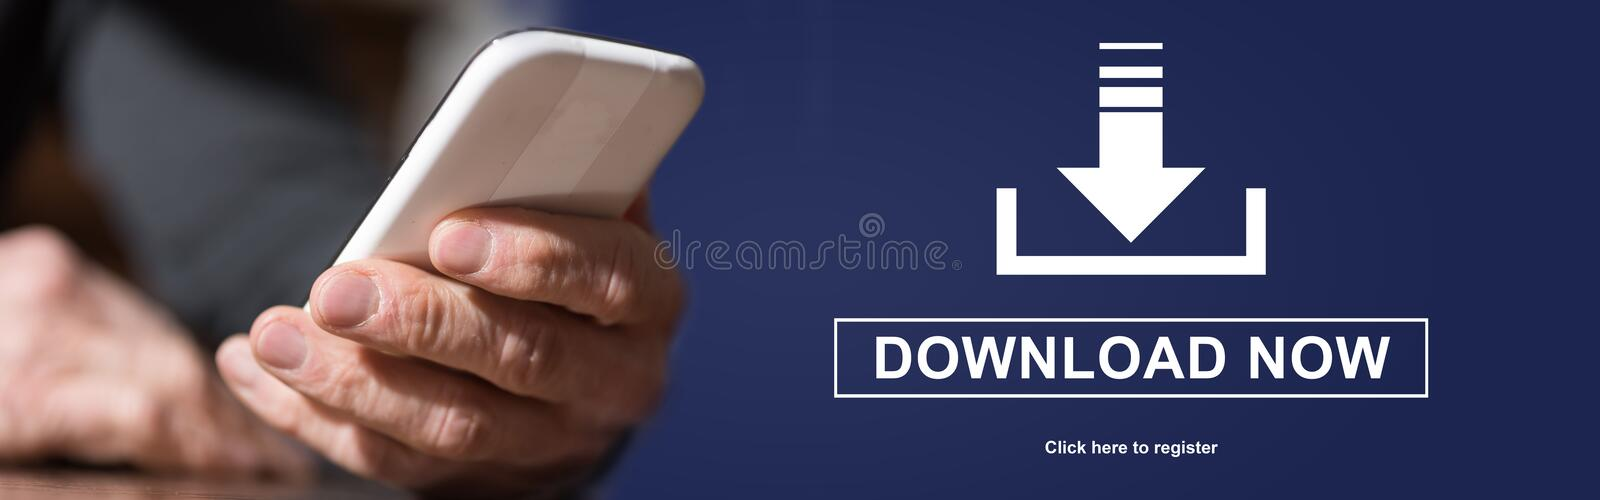 Concept of download. Hand holding mobil phone with download concept on background royalty free stock photography